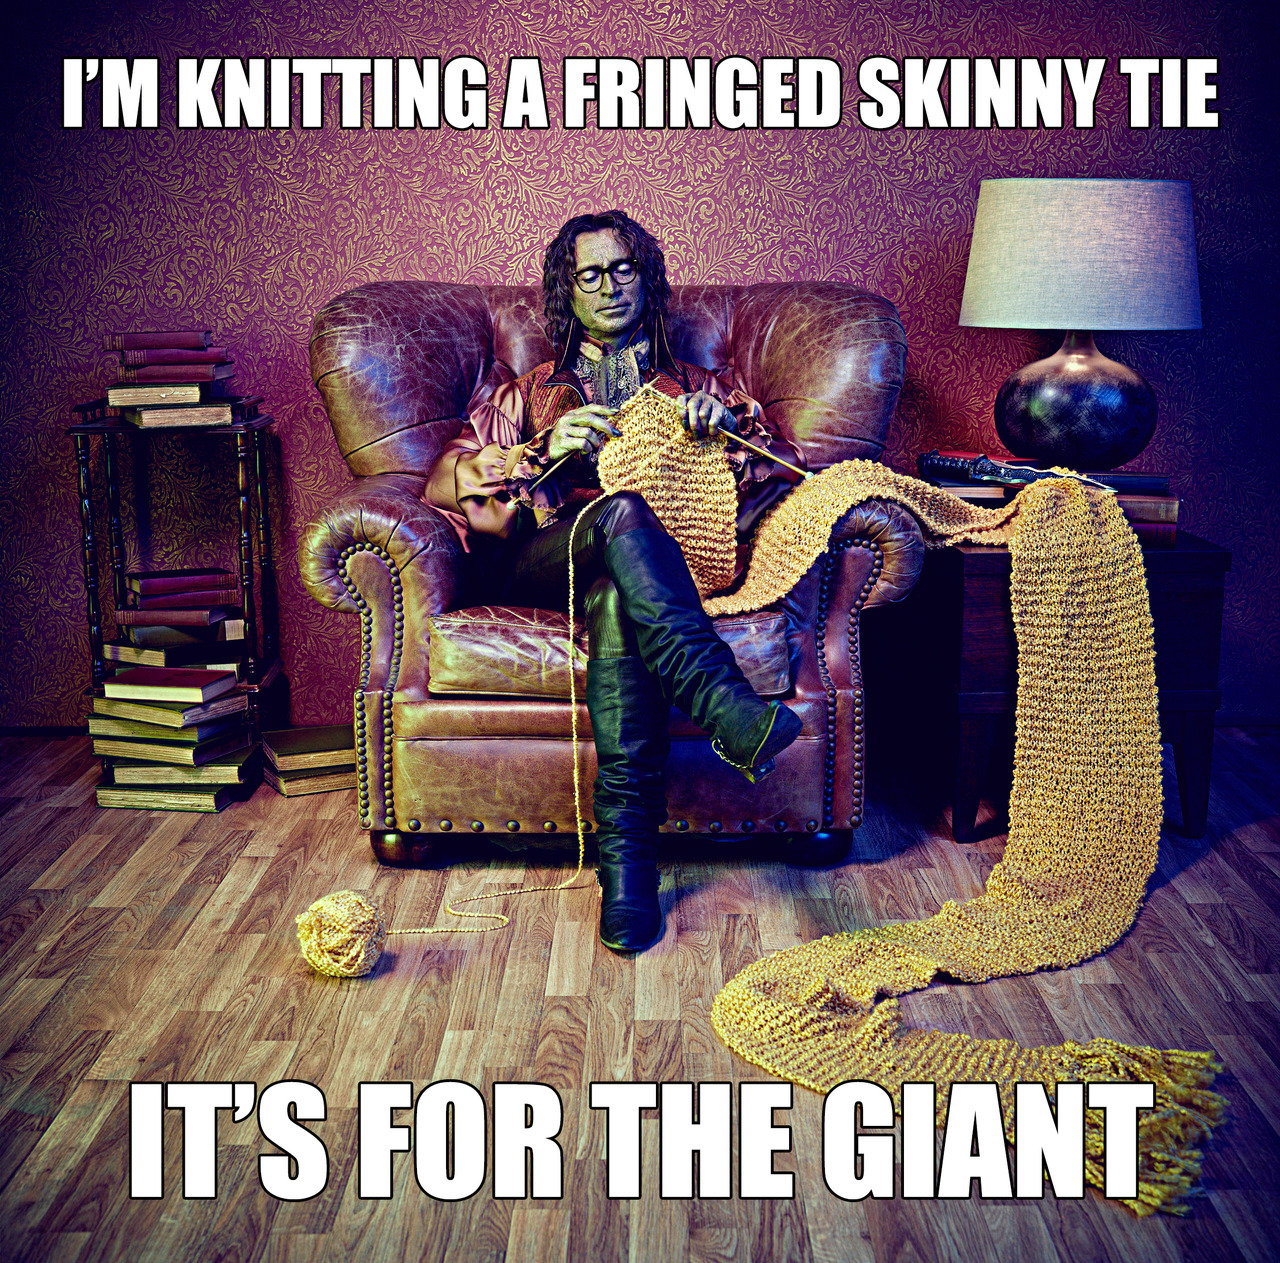 The Giant has very sensitive skin, so the yarn is hypoallergenic.